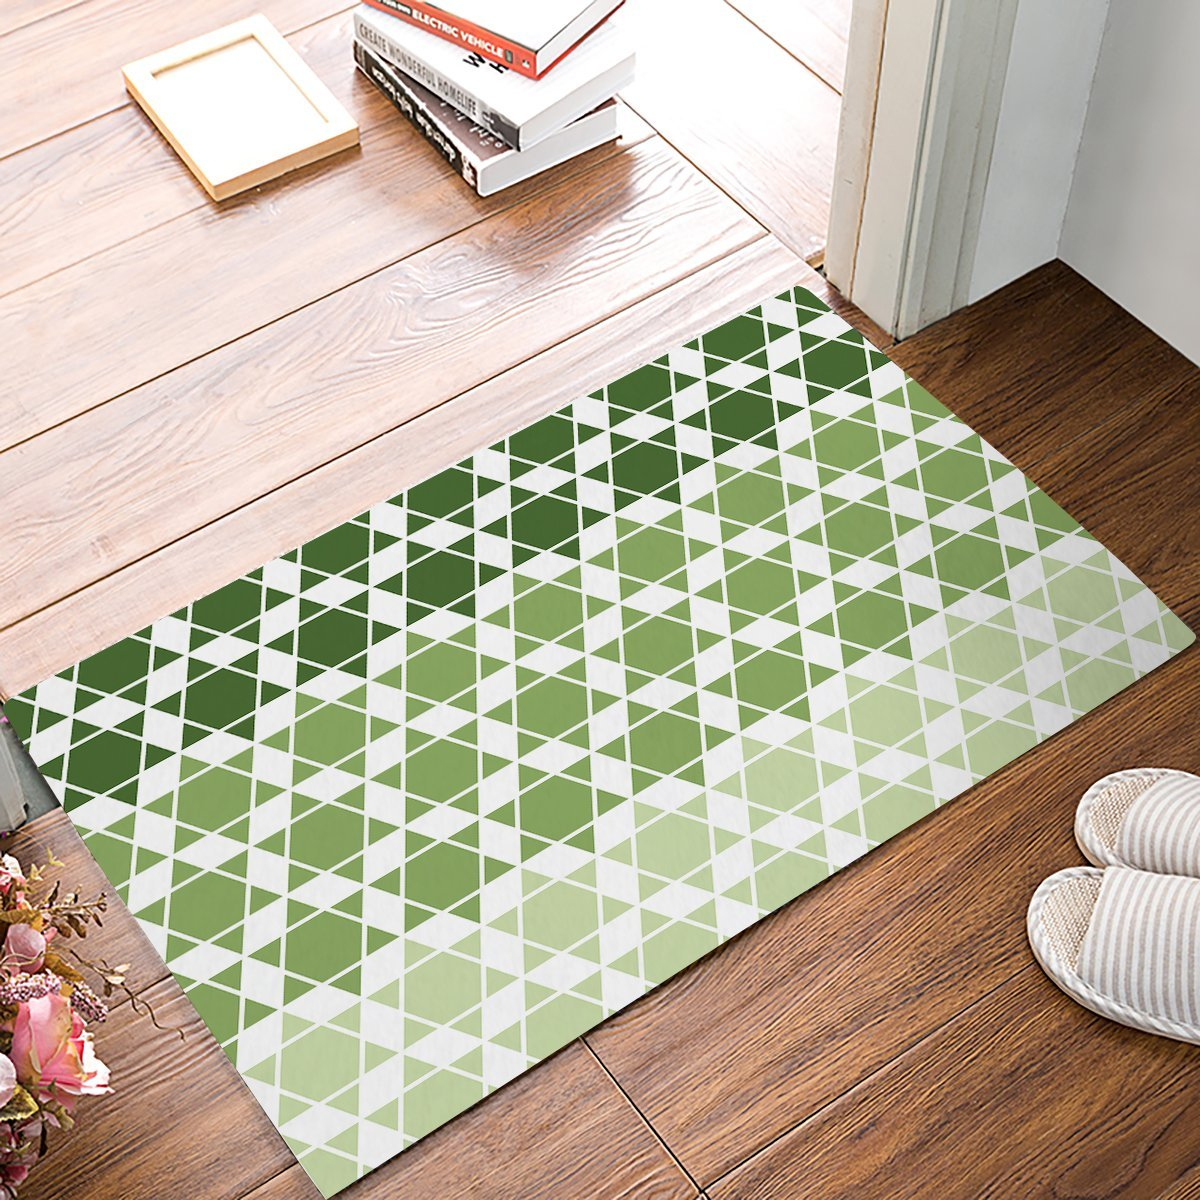 White Kitchen Floor Mats: Modern Green And White Hexagram Lattice Door Mats Kitchen